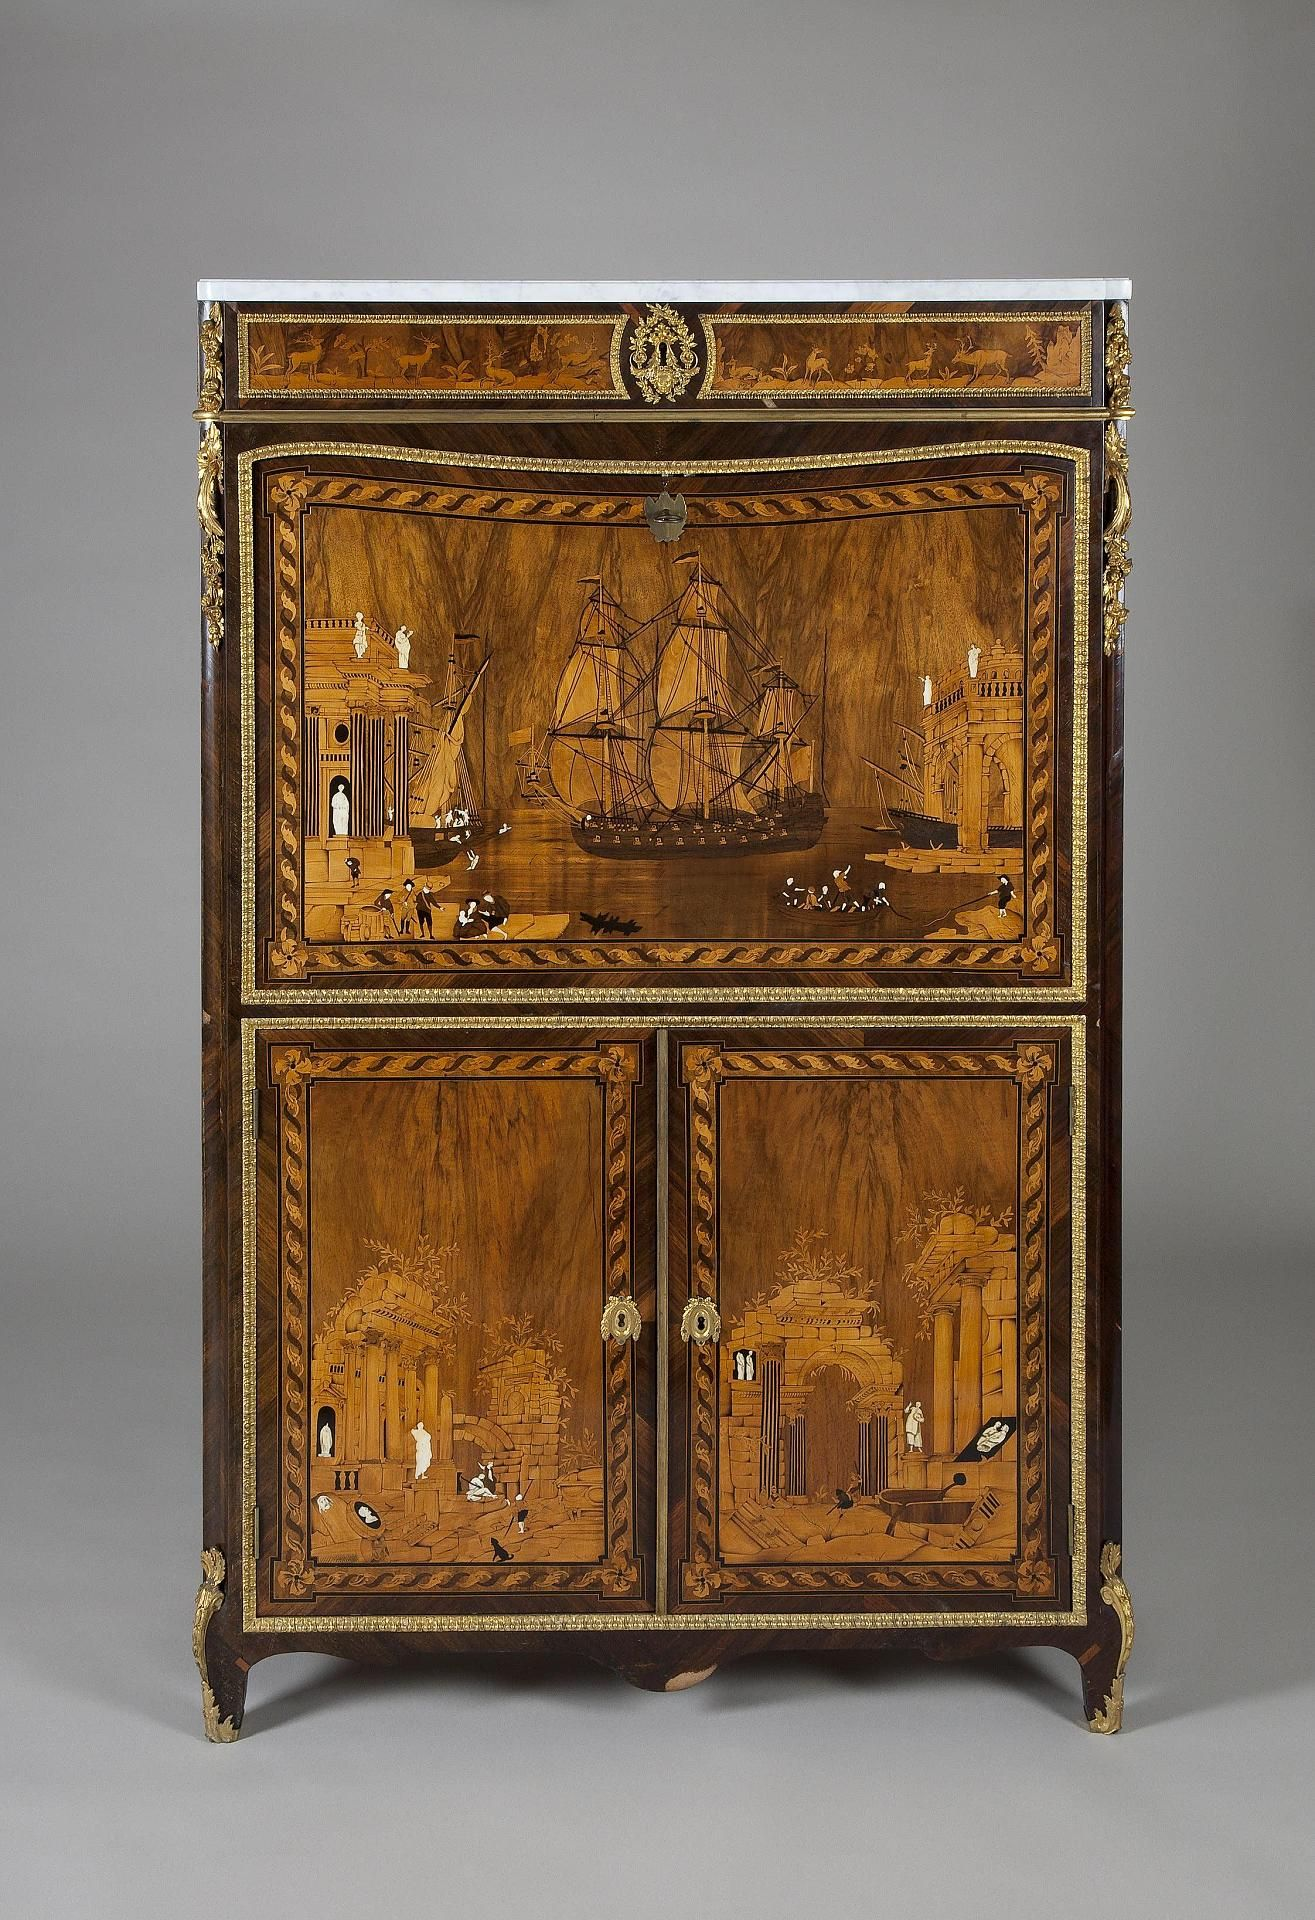 Secretaire. Place of creation: France. Date: Middle of the 18th century. - Secretaire. Place Of Creation: France. Date: Middle Of The 18th